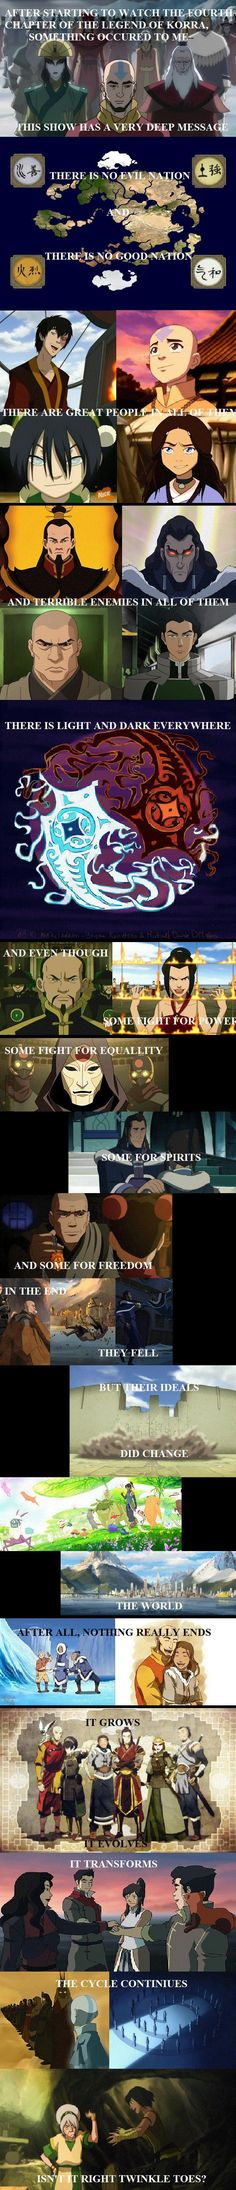 The things I learned from avatar the legend of Aang and Korra Avatar Aang, Avatar Funny, Avatar The Last Airbender Art, Team Avatar, Zuko, Legend Of Aang, Avatar Series, M Anime, Fandoms